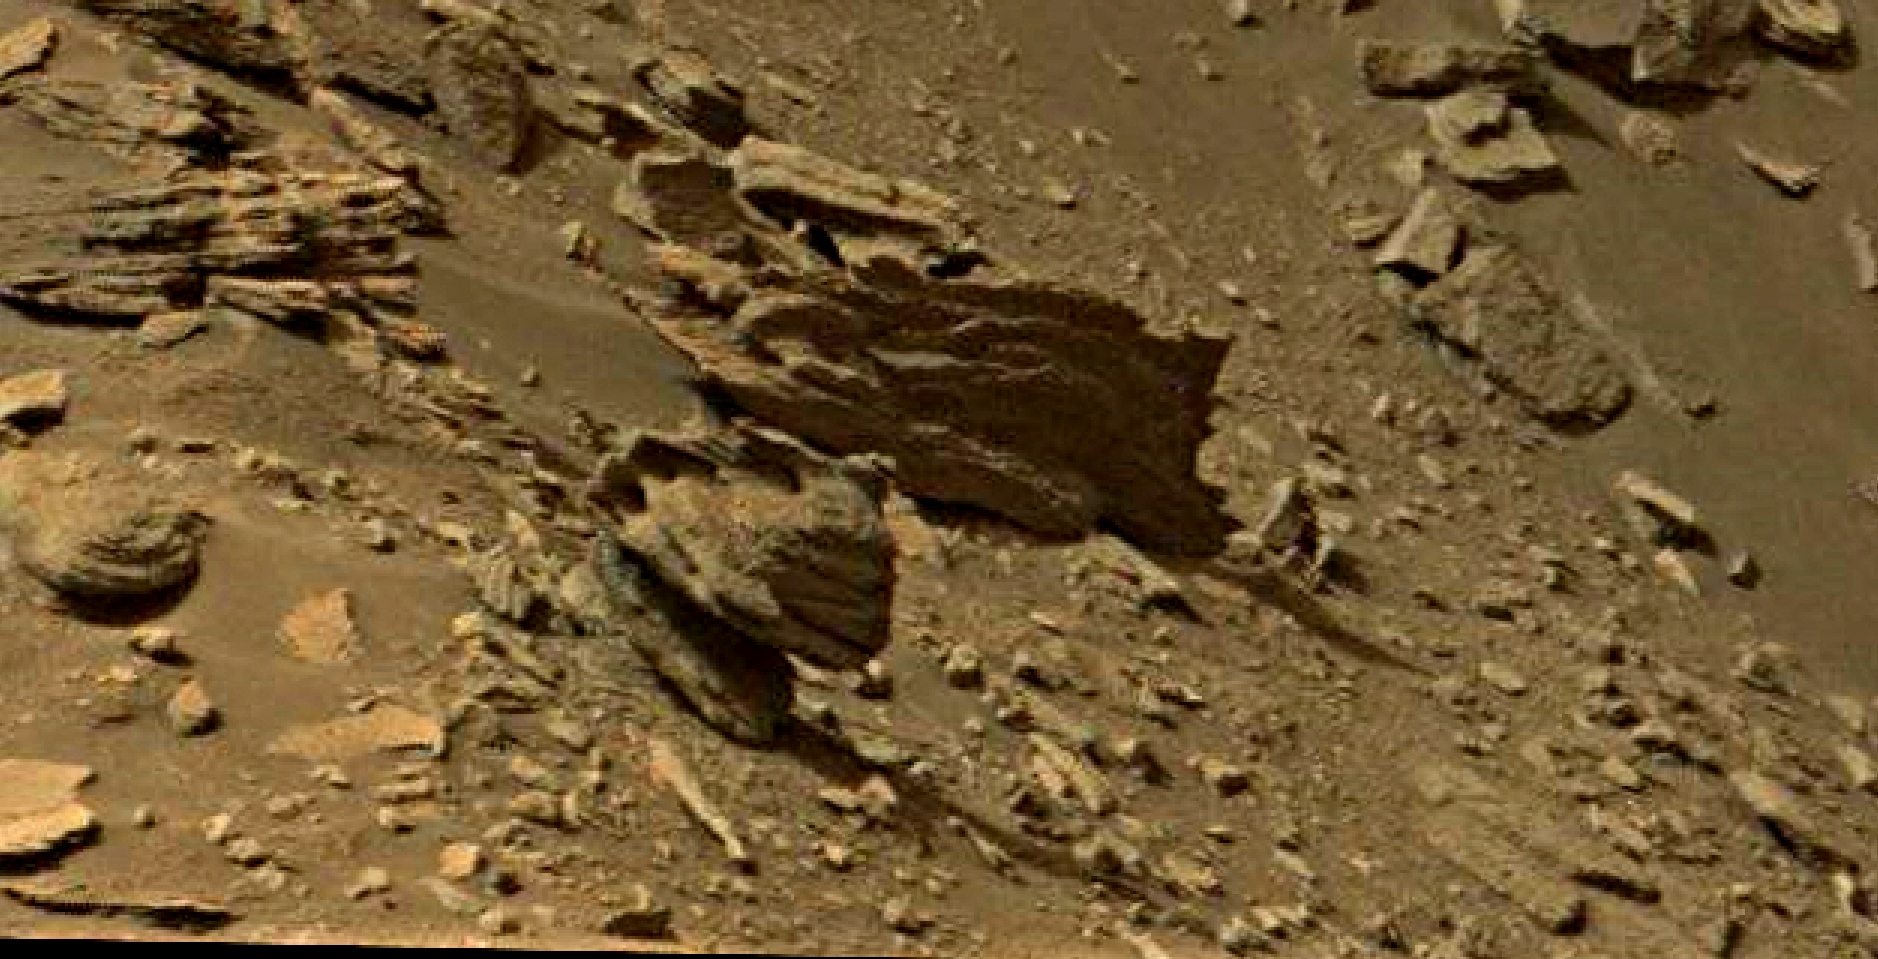 mars-sol-1450-anomaly-artifacts-4-was-life-on-mars